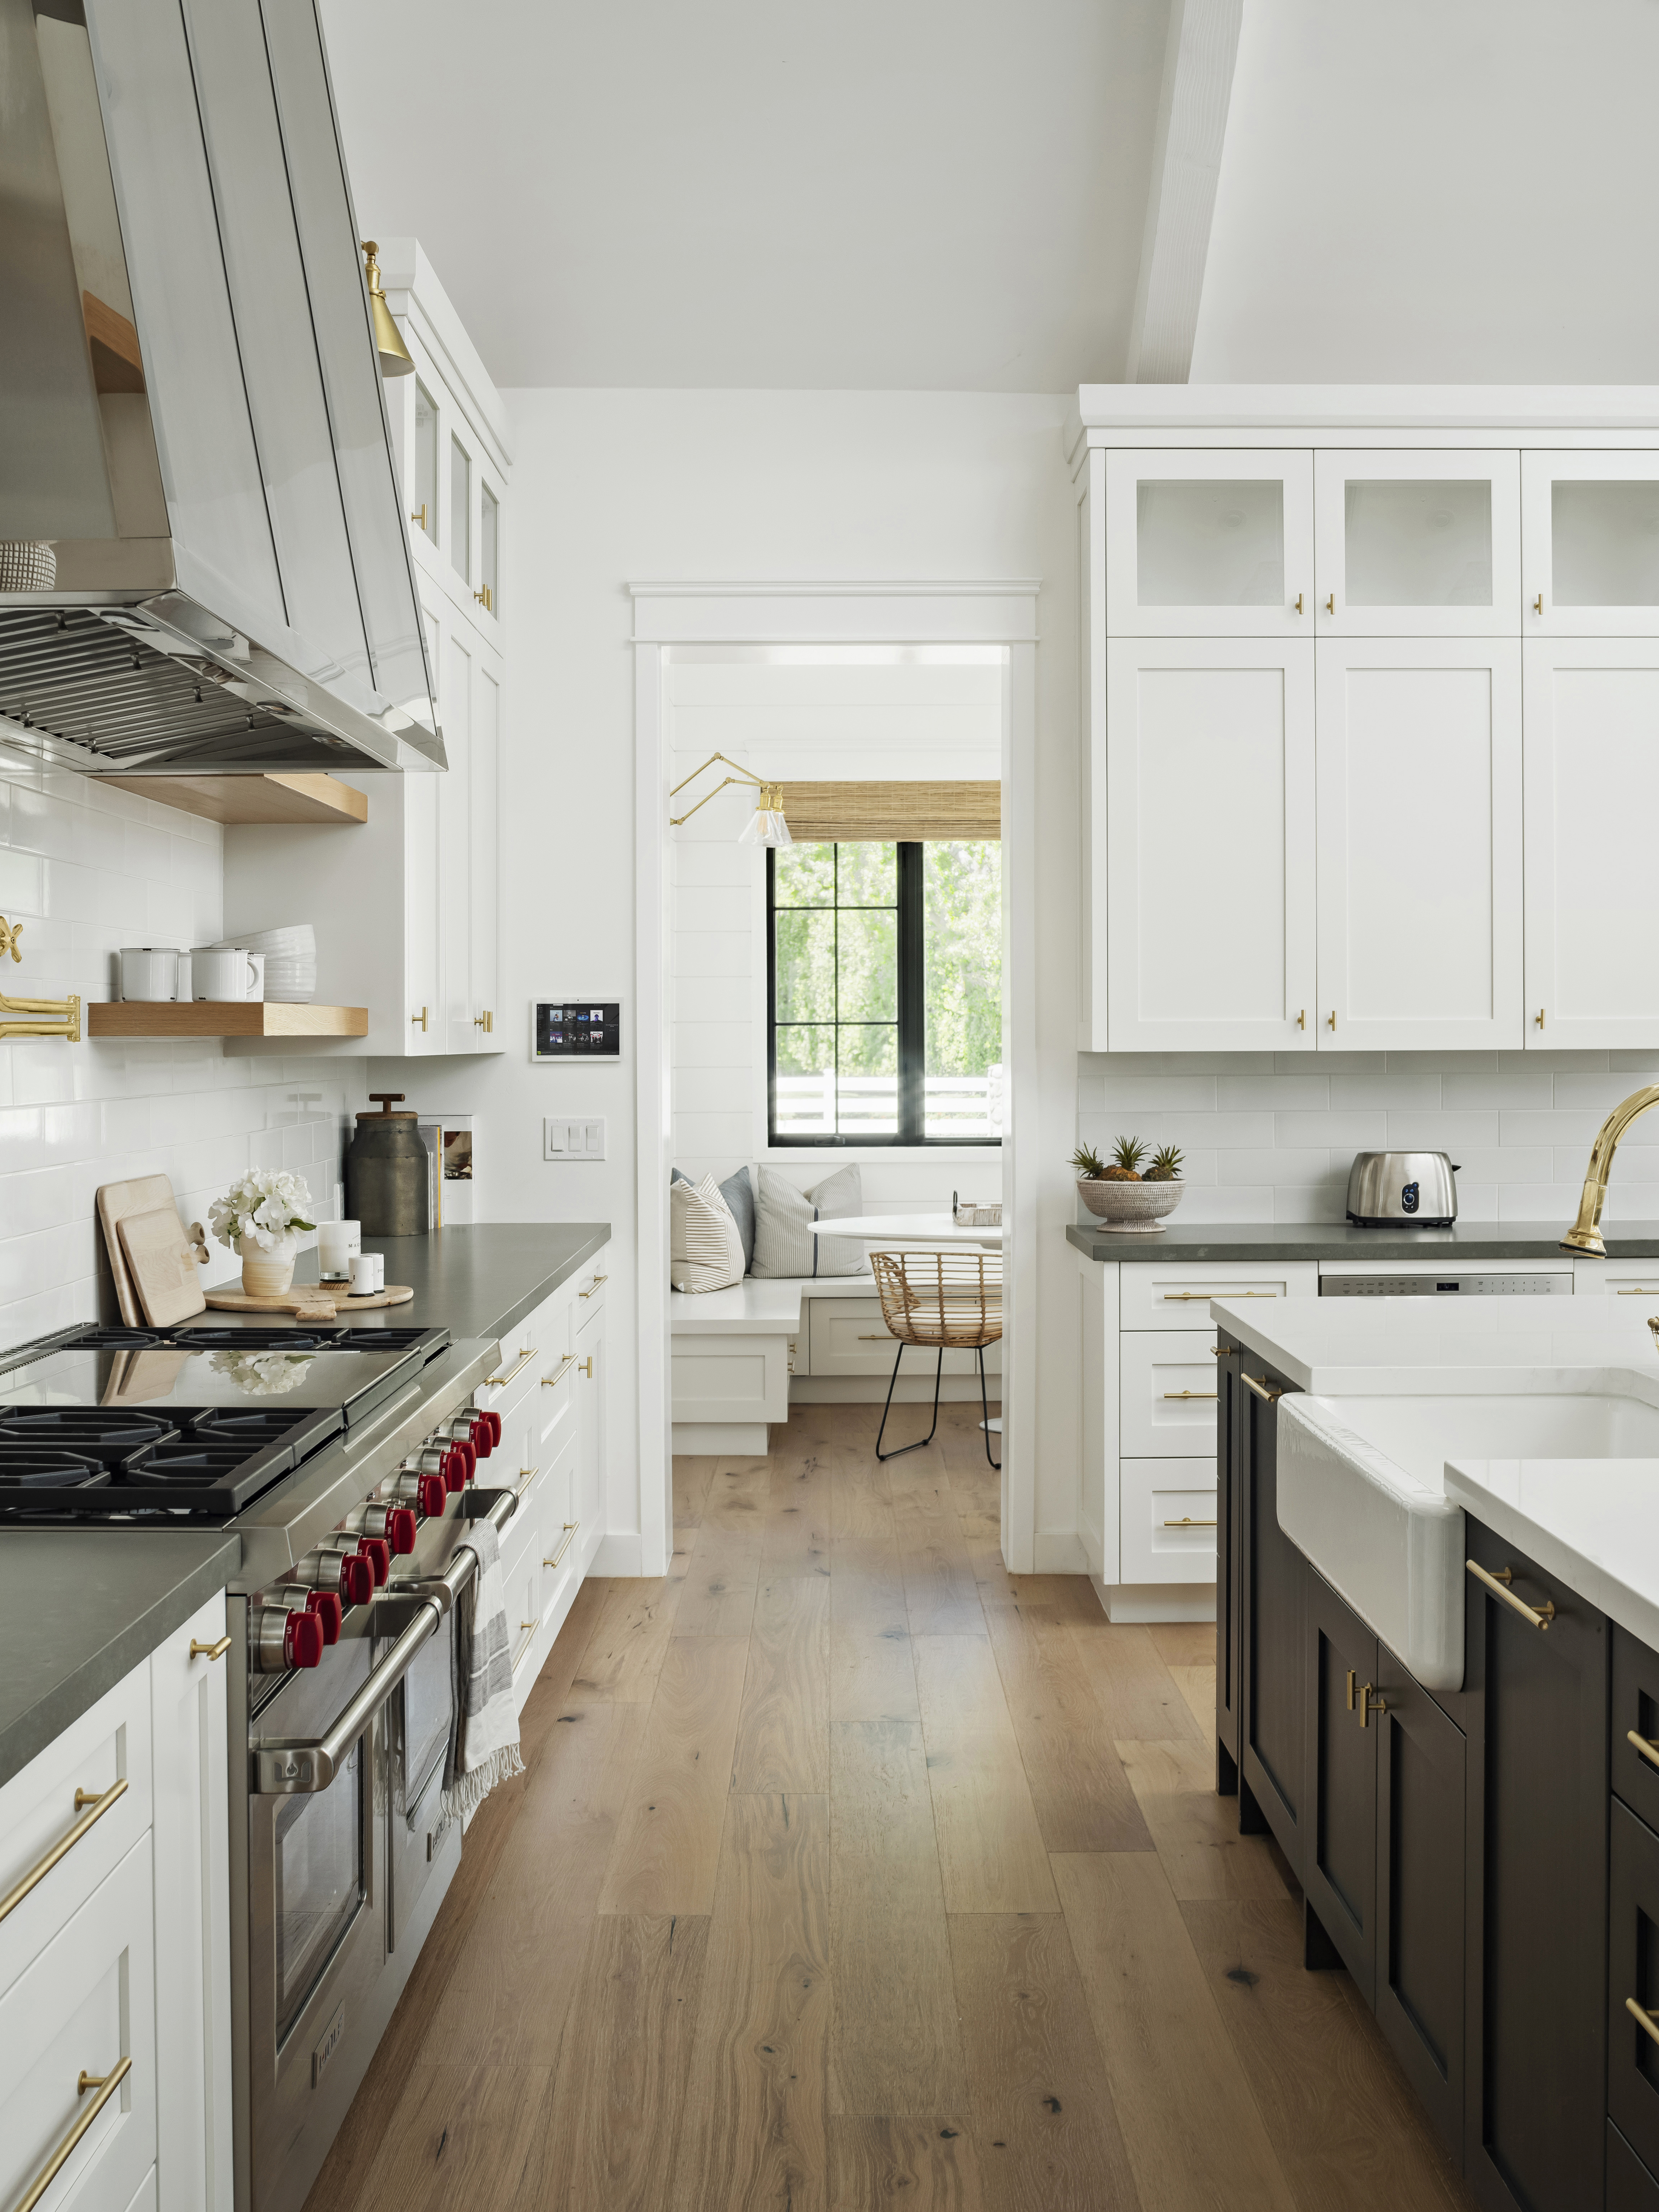 http://www.rafterhouse.com/wp-content/uploads/2020/01/Misc.-Interior-Design_3-web-cropped.jpg